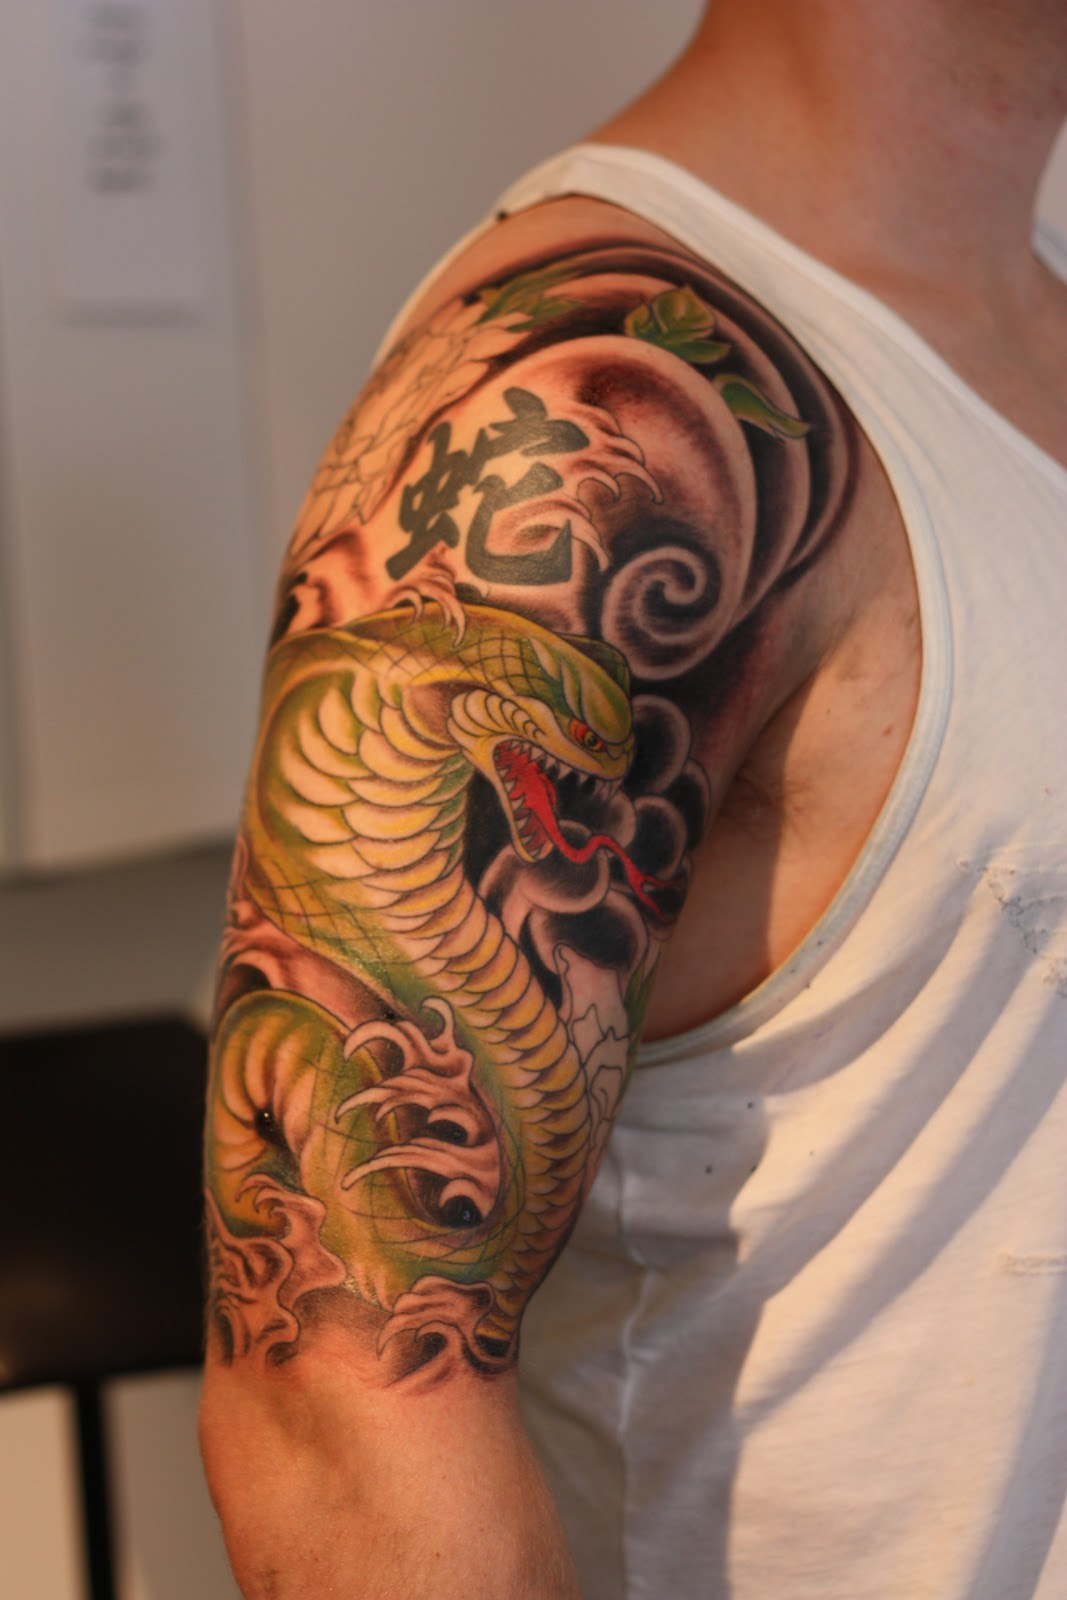 Tattoo Half Sleeve: INK TATTOO: Japanese Cobra Half Sleeve, #2